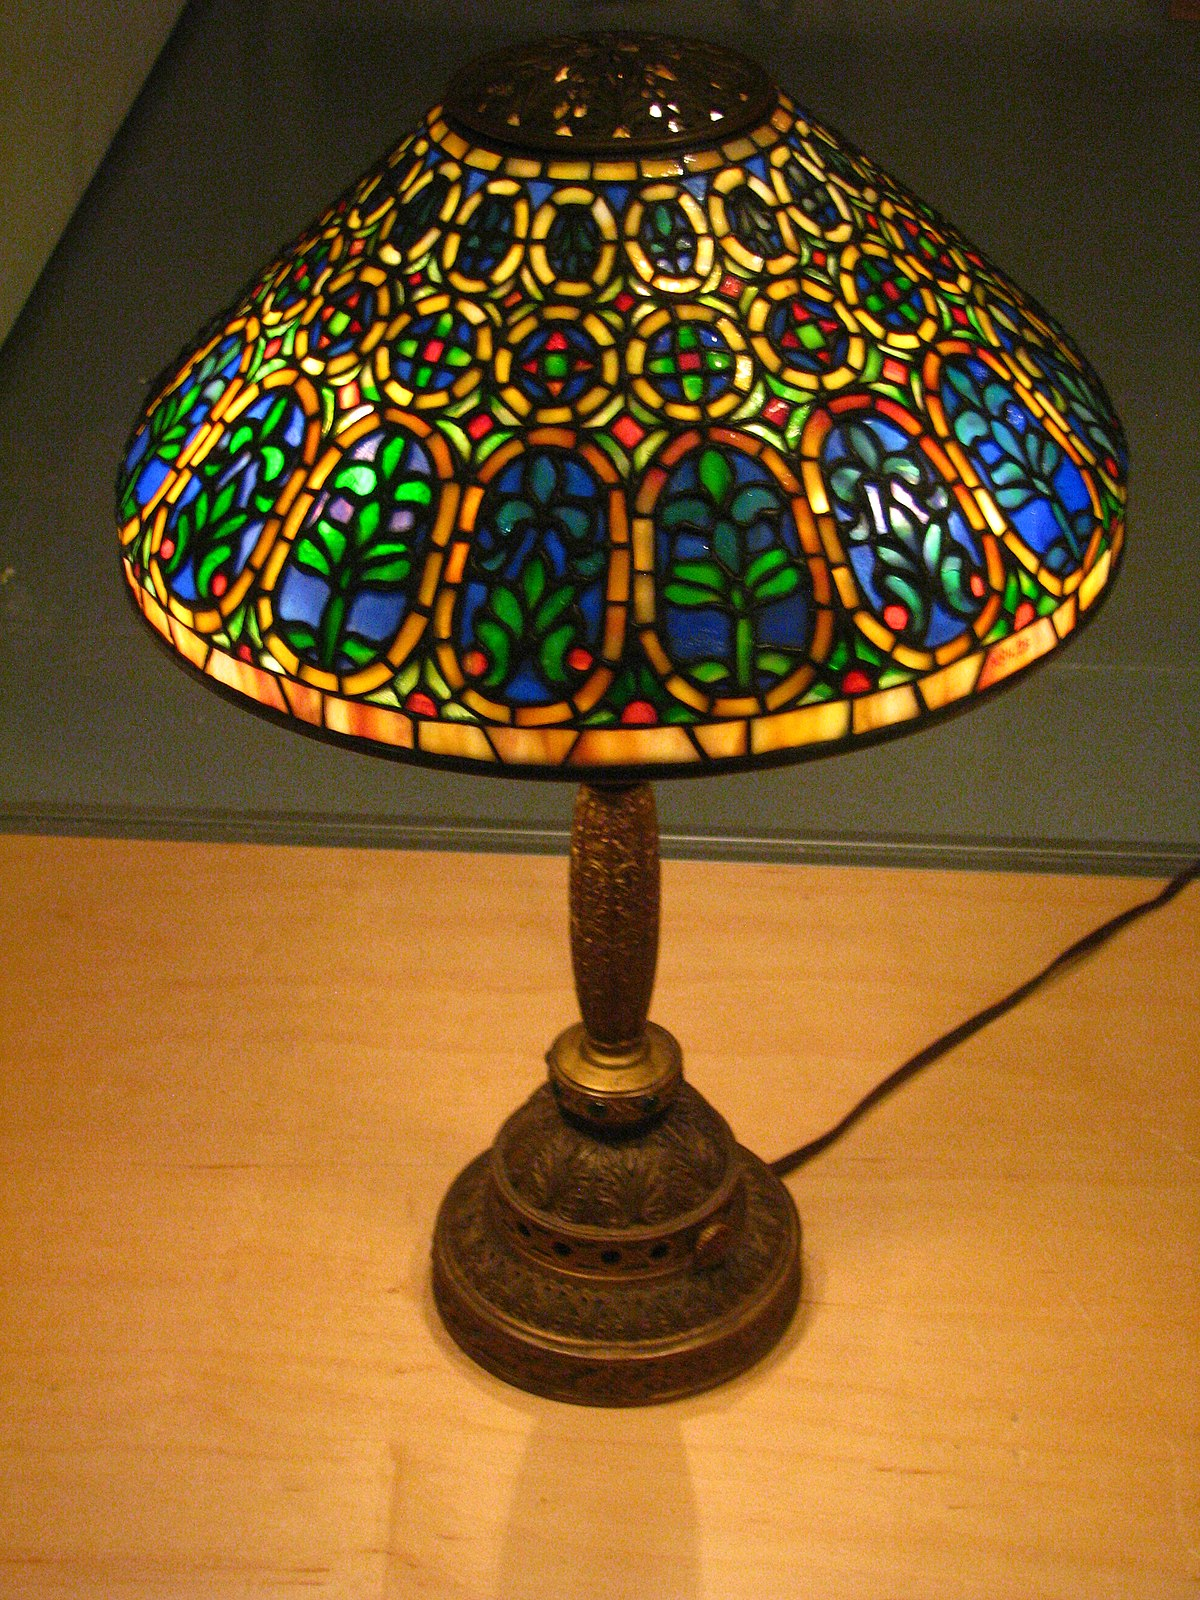 Tiffany Lamp Simple English Wikipedia The Free Encyclopedia